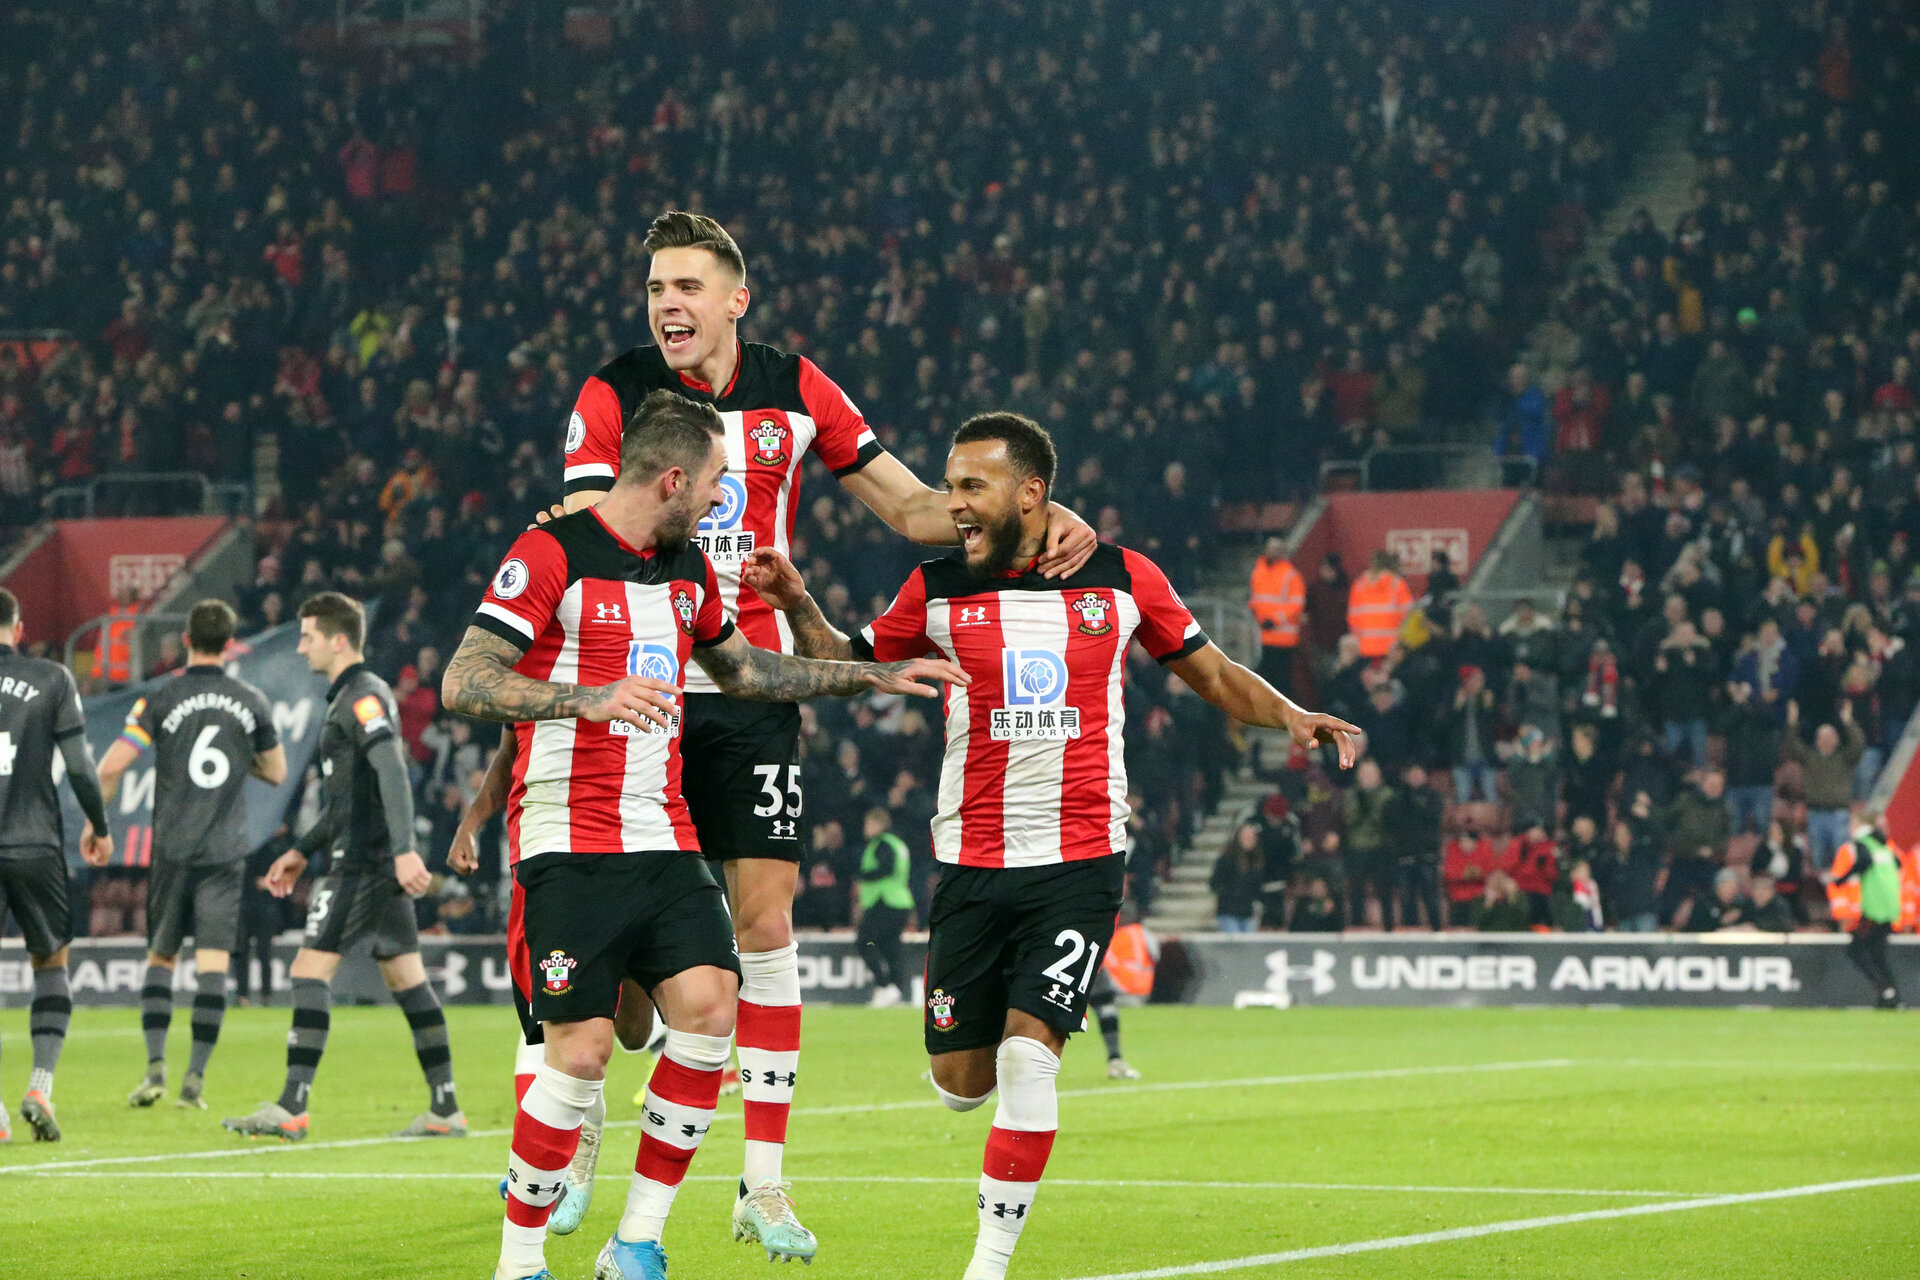 SOUTHAMPTON, ENGLAND - DECEMBER 4: Ryan Bertrand's goal celebration during the Premier League match between Southampton FC and with Norwich City FC at St Mary's Stadium on December 4, 2019 in Southampton, United Kingdom. (Photo by Chris Moorhouse/Southampton FC via Getty Images)